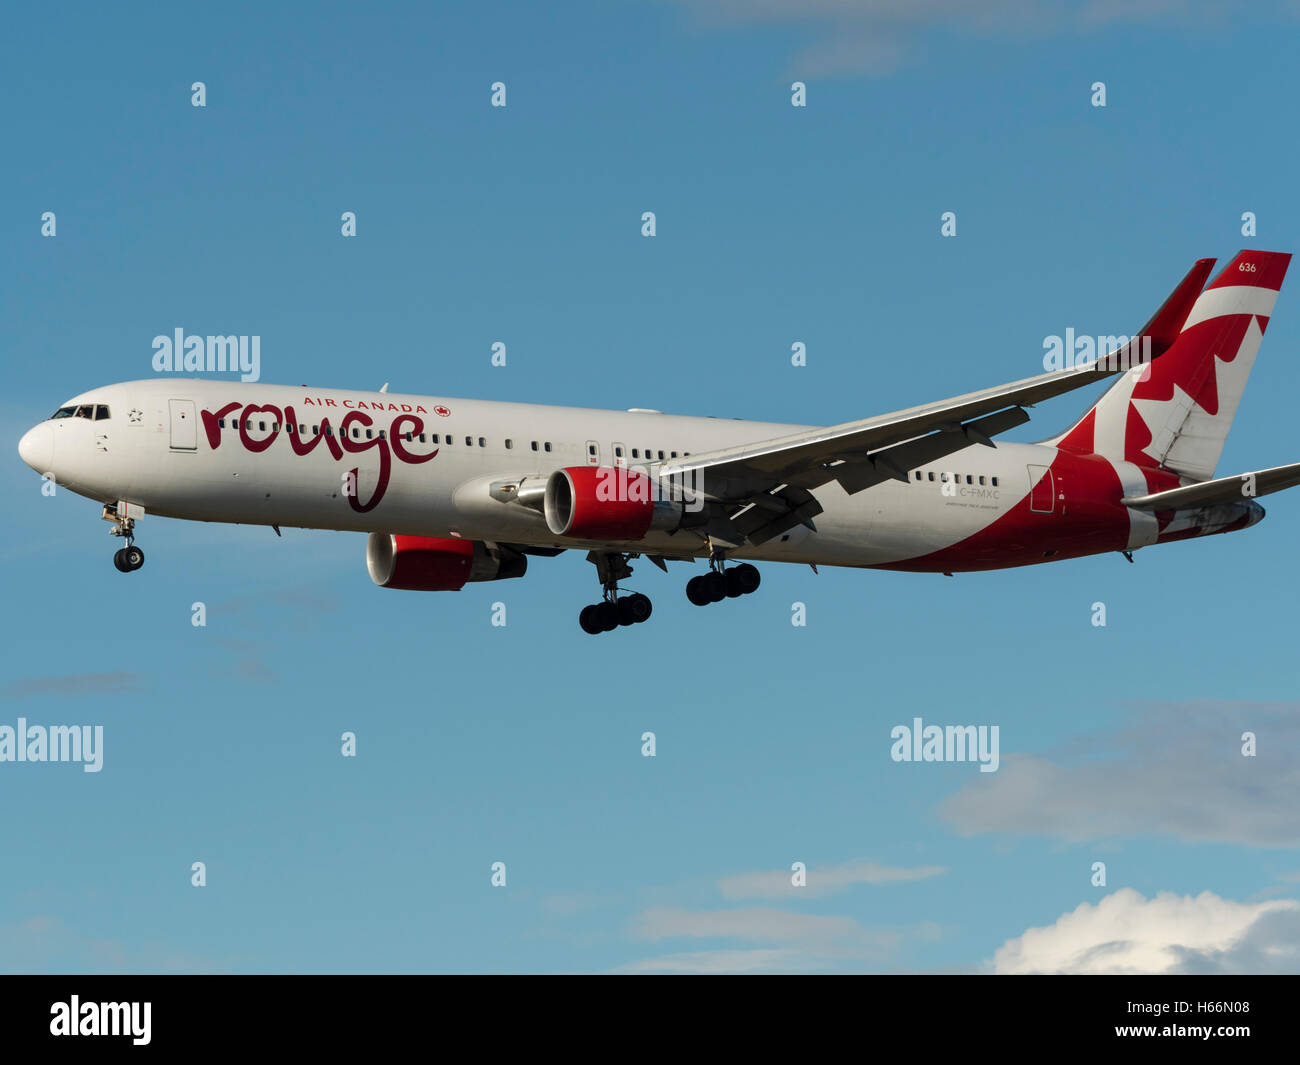 Air Canada rouge Boeing 767 (767-300ER) C-FMXC airliner final approach for landing Vancouver International Airport,Canada Stock Photo